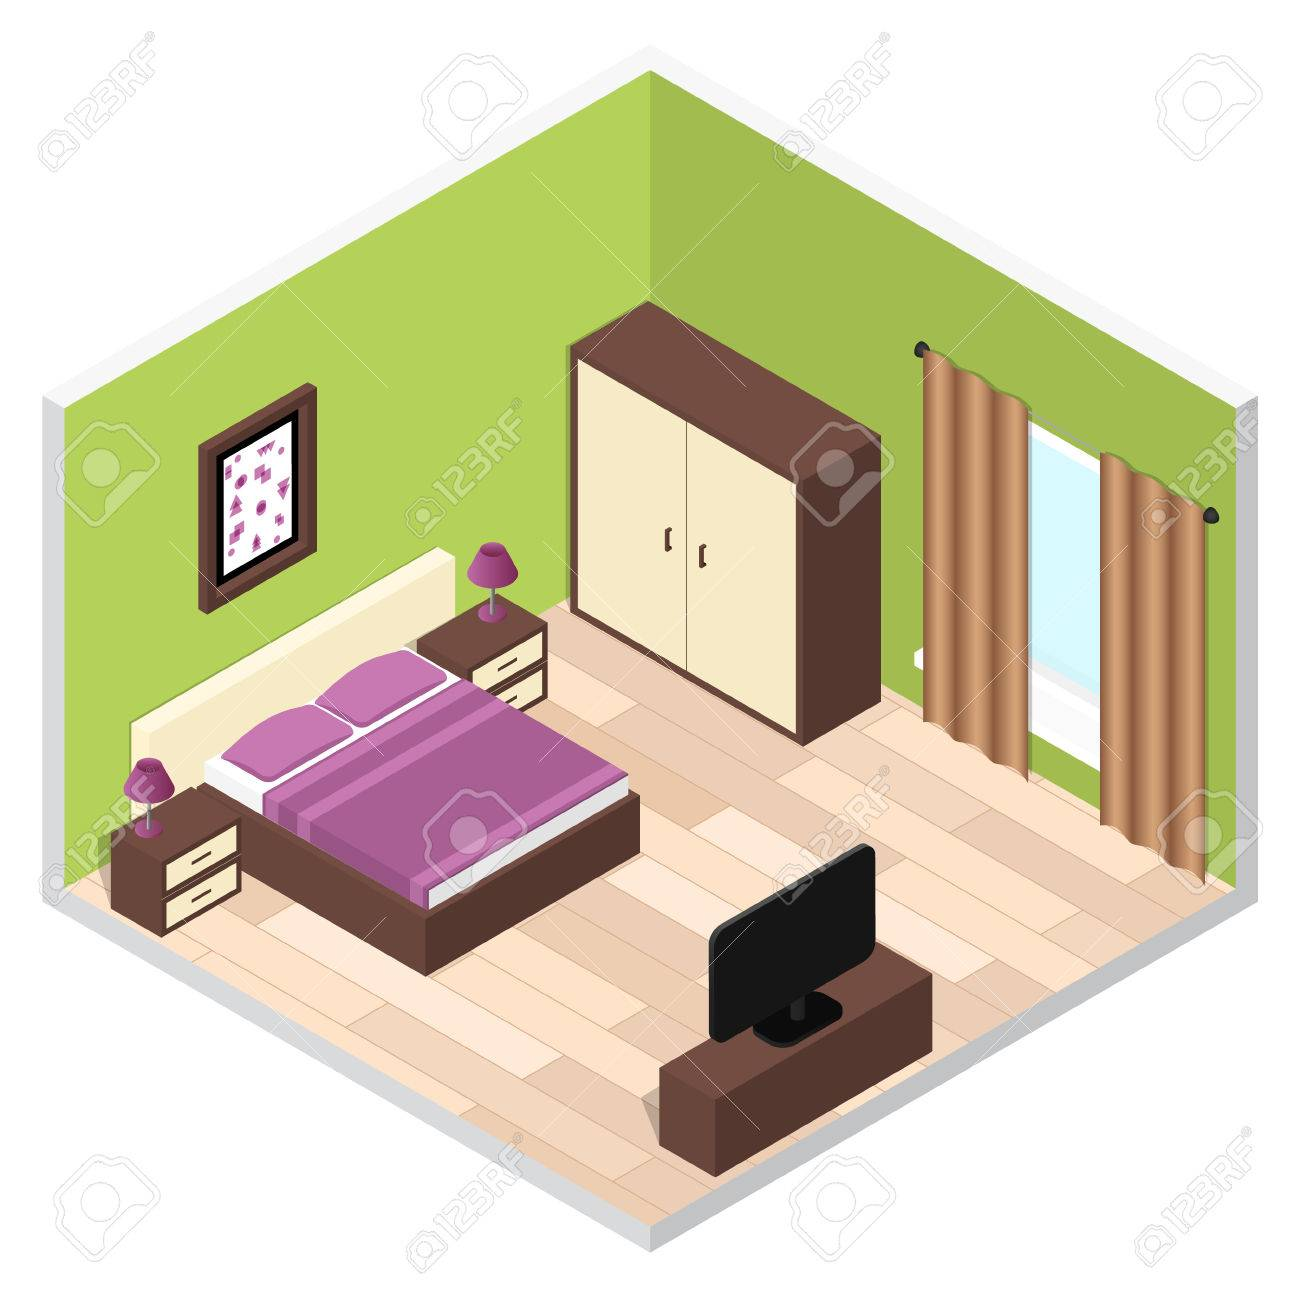 bedroom isometric interior with furniture vector illustration